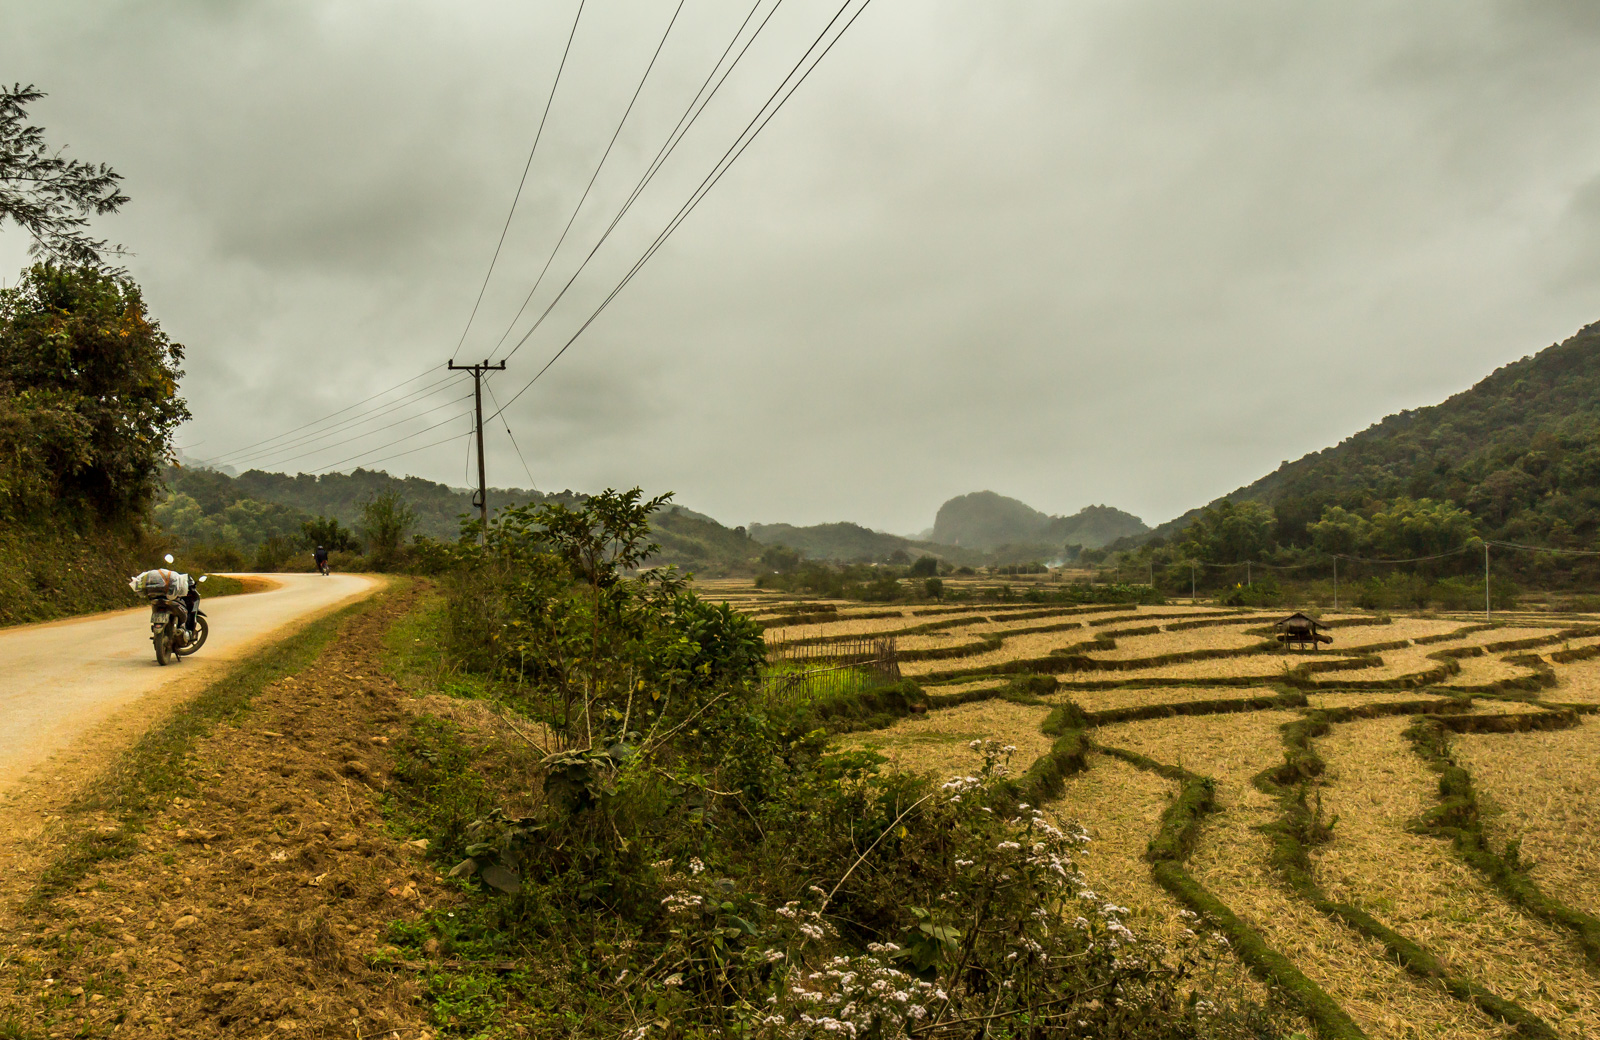 Despite being so close to Vietnam, the landscape was different.